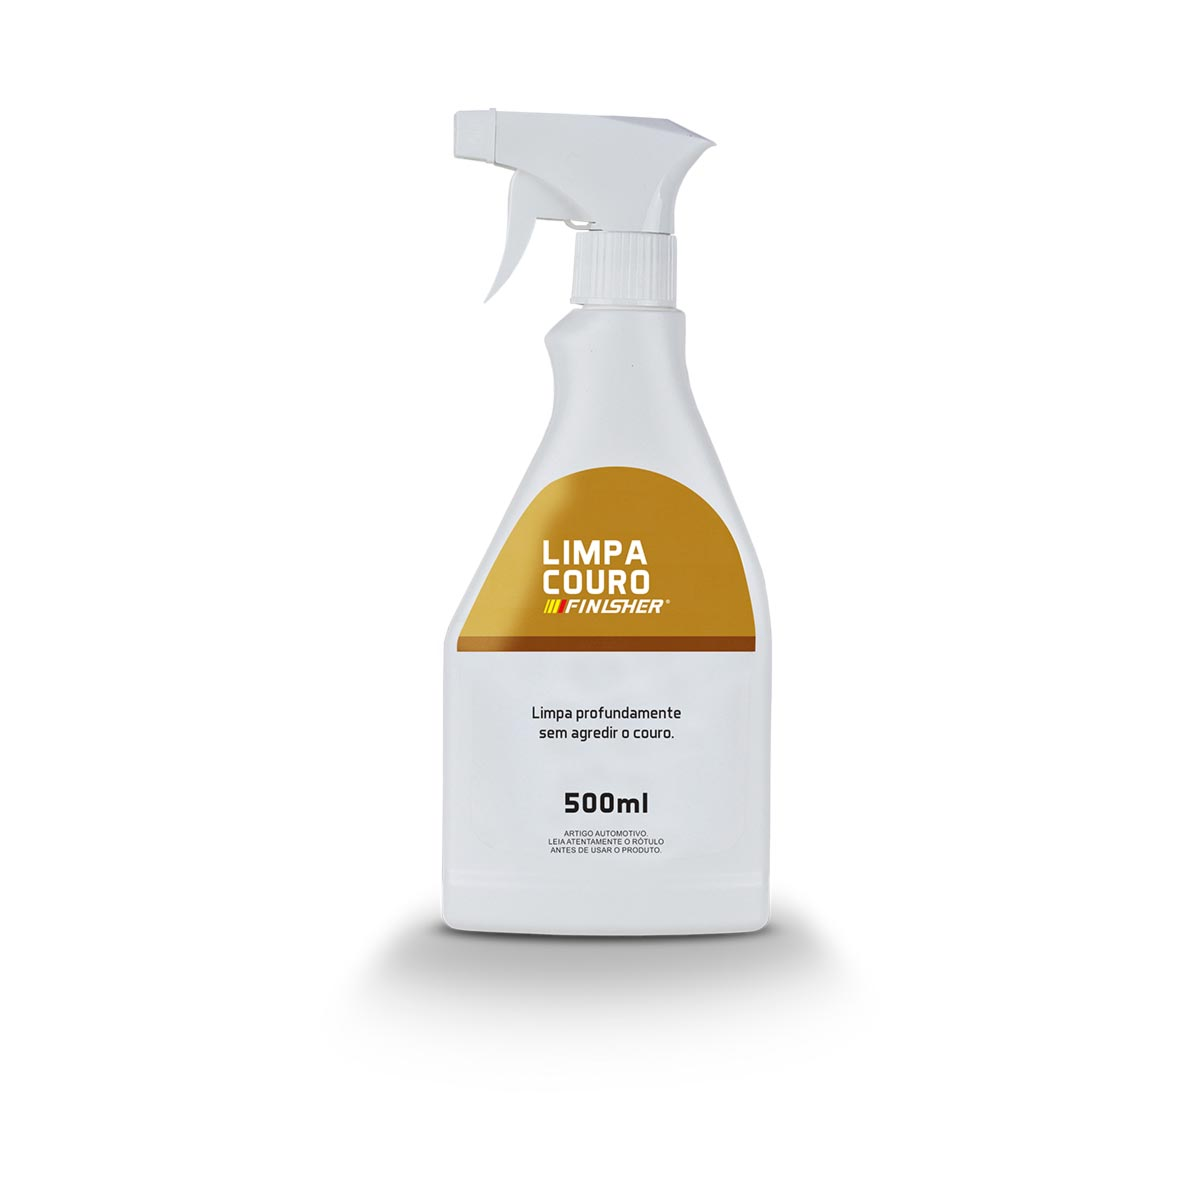 Limpa Couros 500ml Finisher